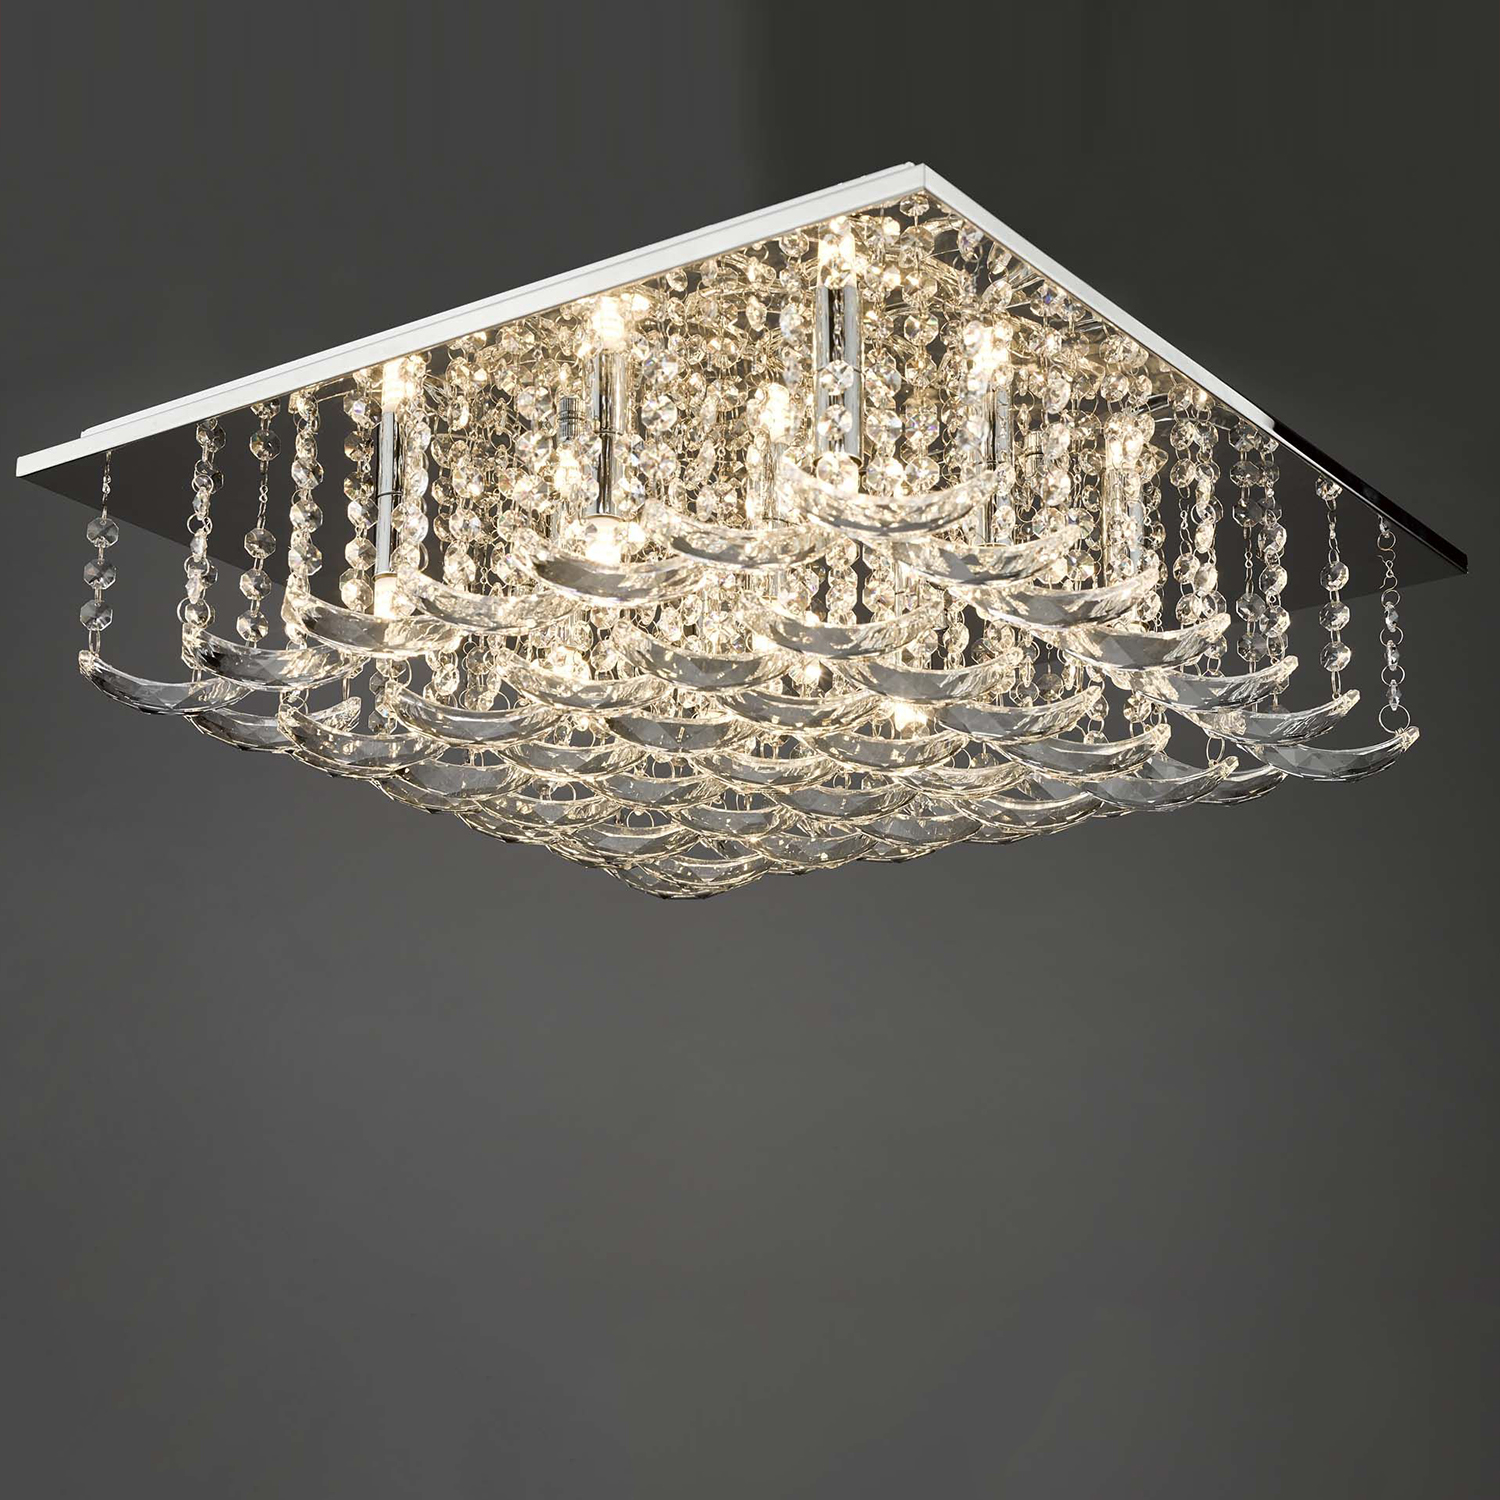 Orella 9 Bulb Polished Chrome & Crystal Flush Ceiling Light